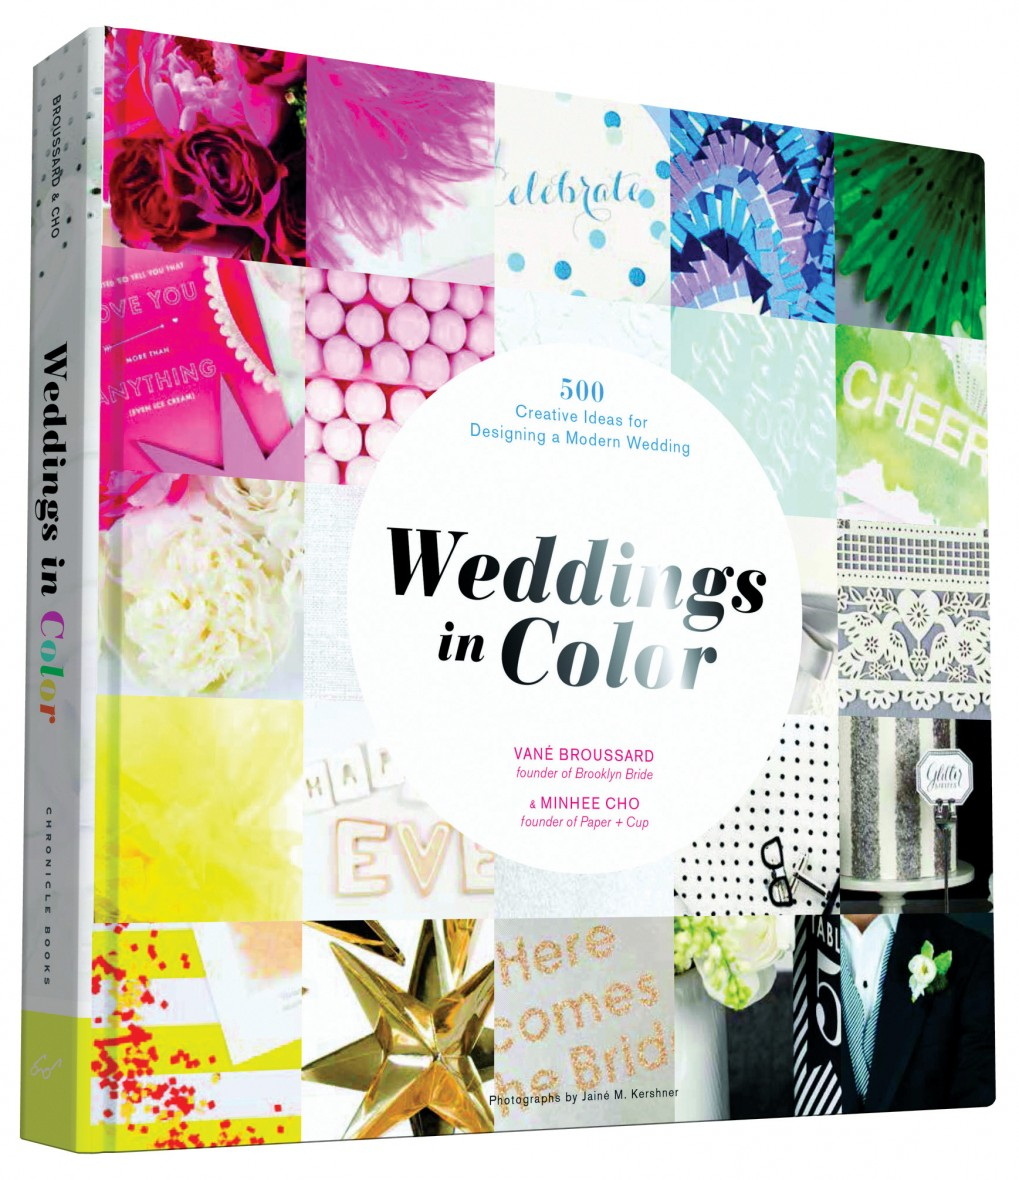 Wedding in Color - 3D cover